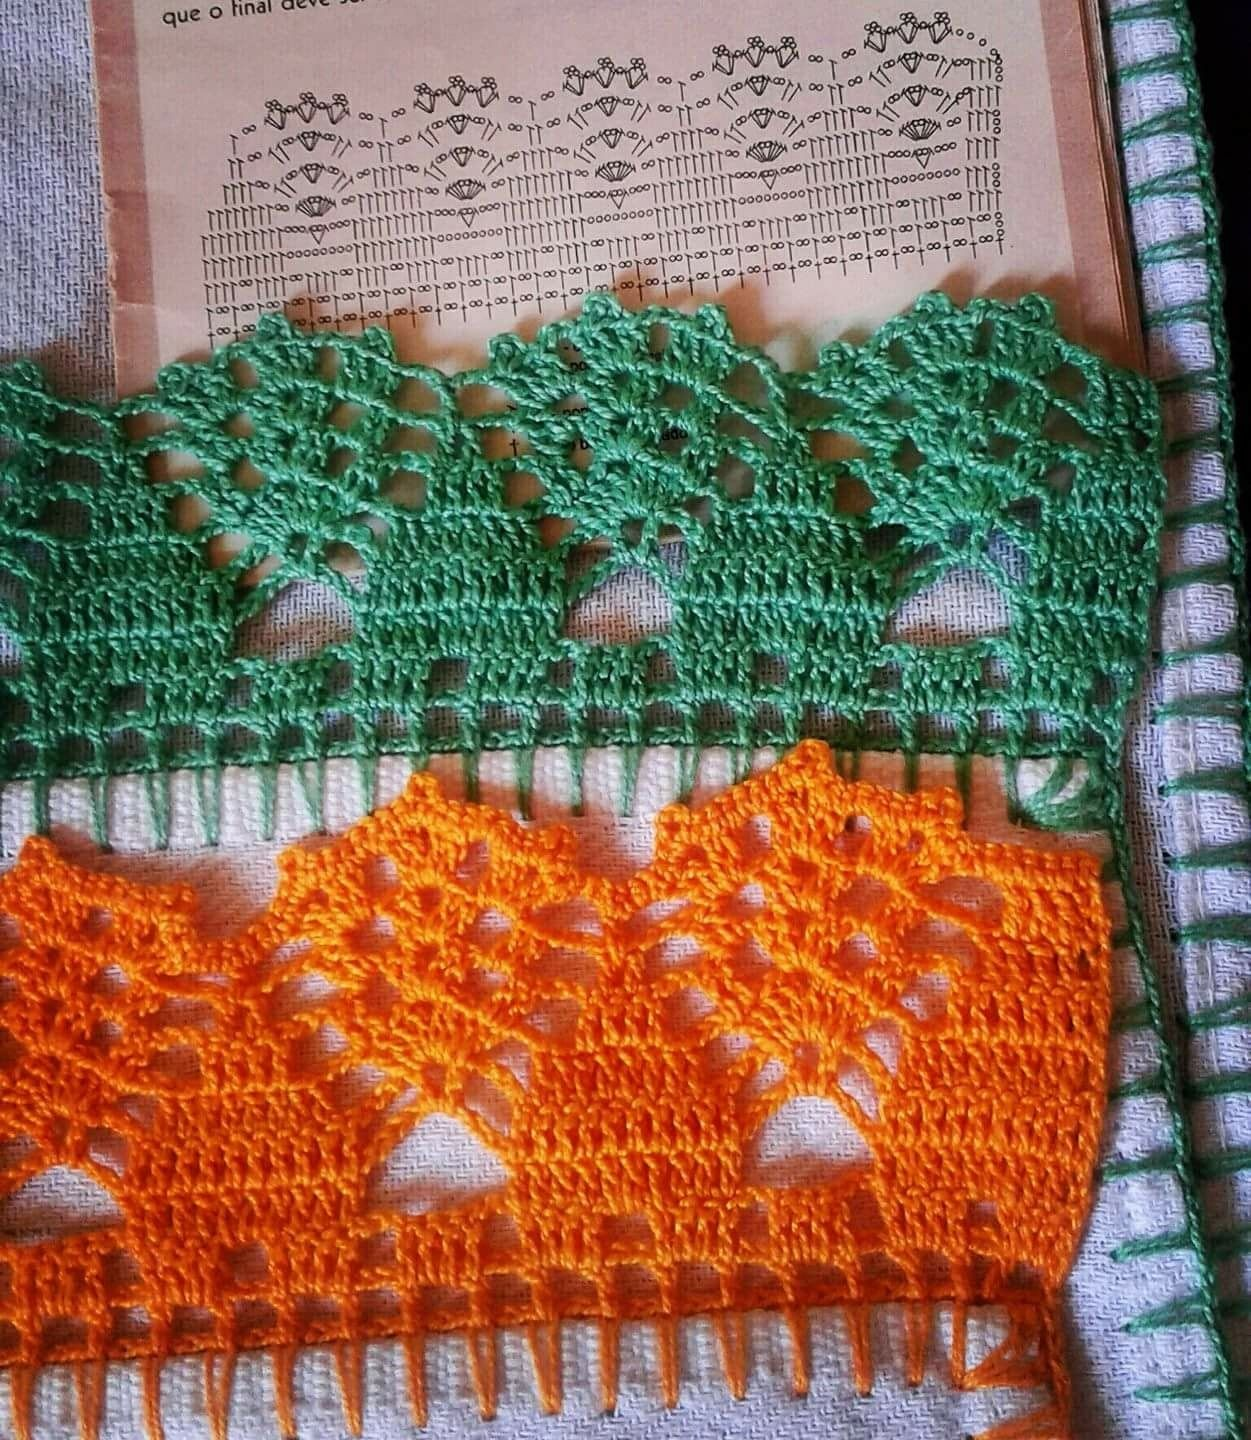 Pin By Nur On Rgler Pinterest Crochet Stitches And Trippy Hippy Afghan Pattern Kingdom Crotchet Lace Patterns Handicraft Hand Embroidery